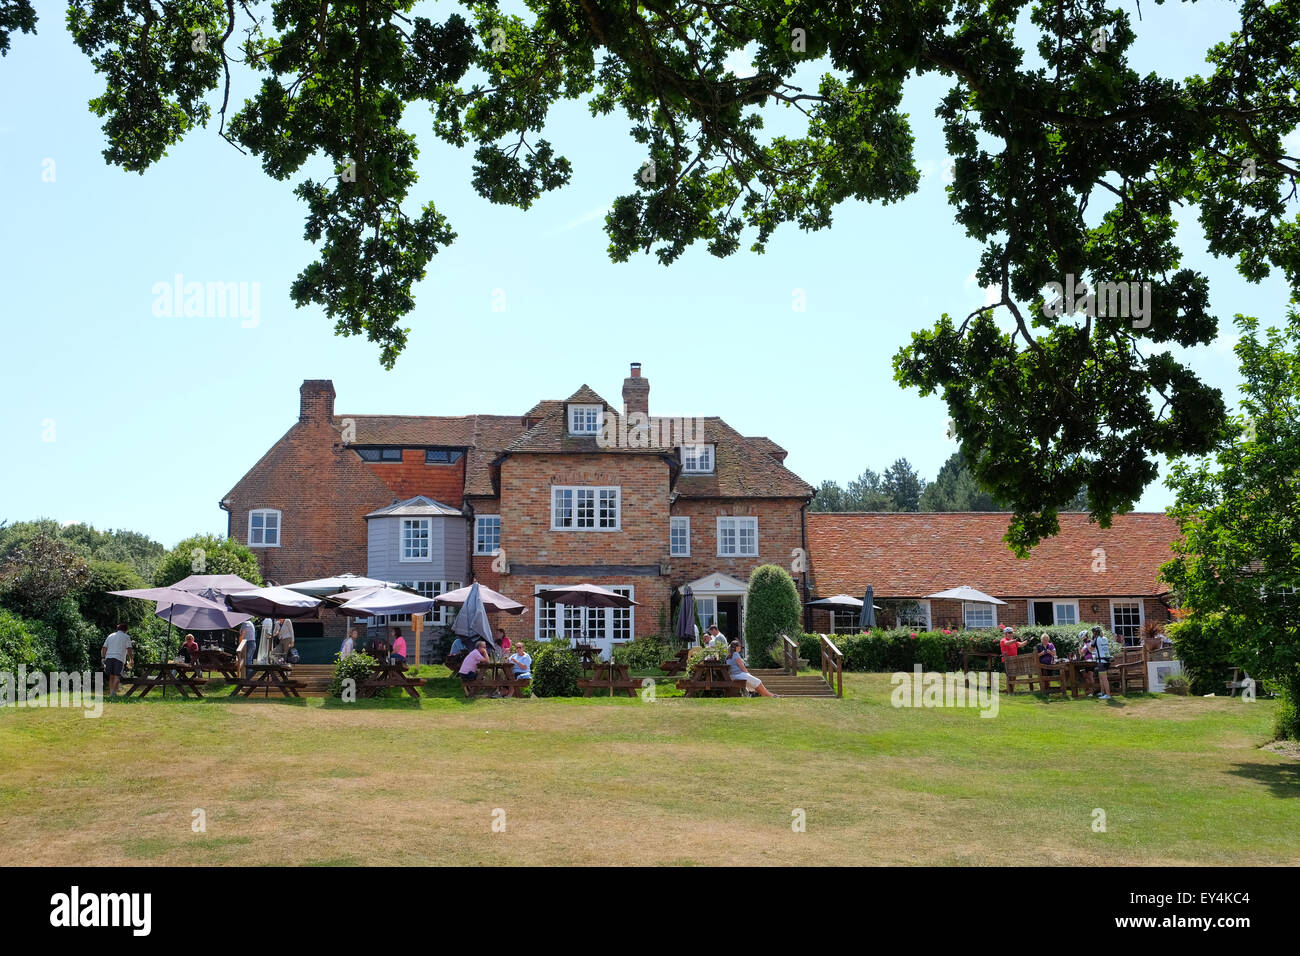 Buckler's Hard Master Builders Pub and Hotel in the New Forest Hampshire UK - Stock Image